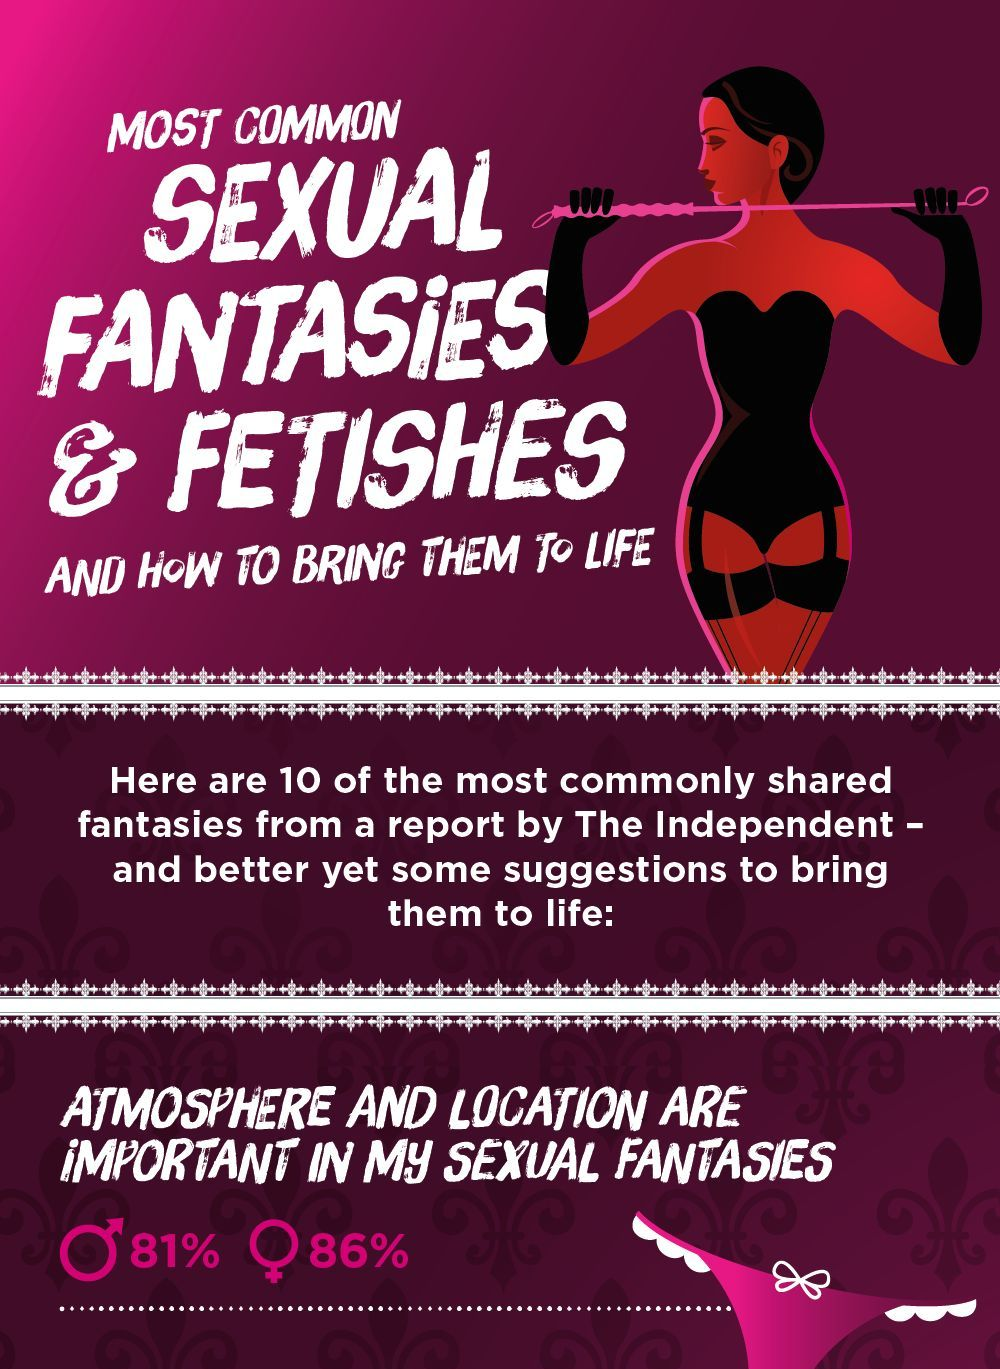 Most common sexual fantasy for women